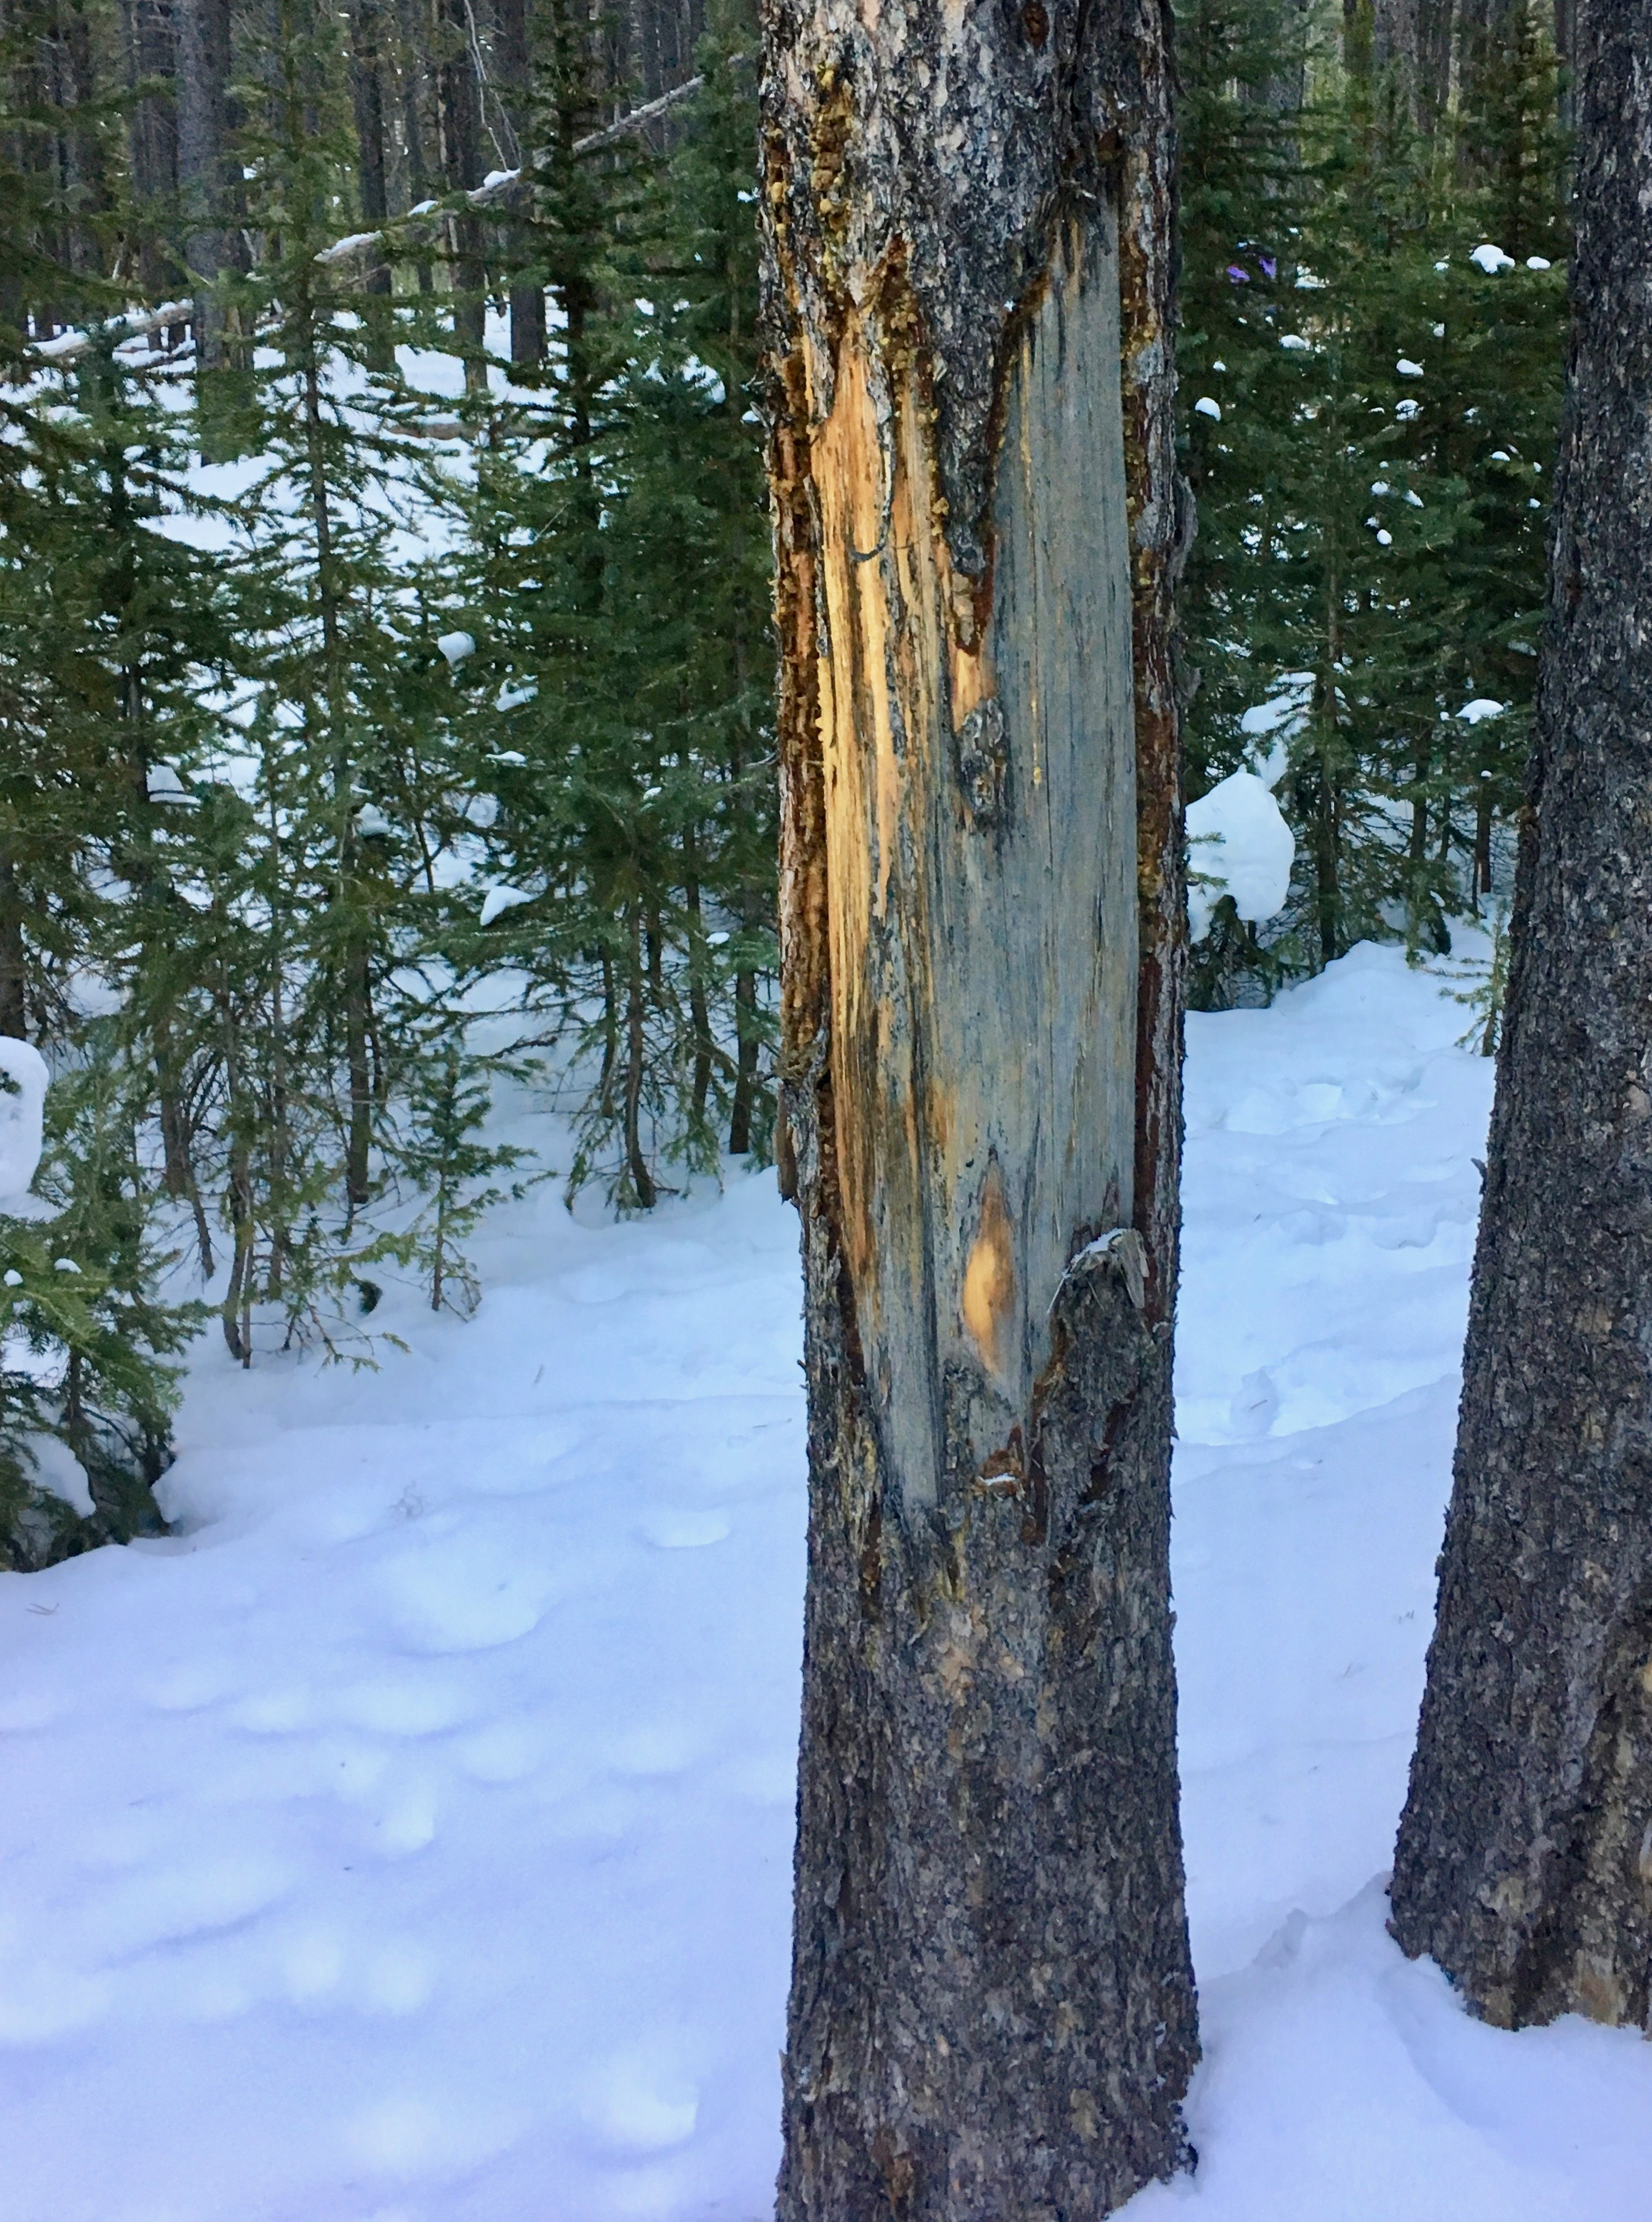 A tree tells the story of bison polishing their horns